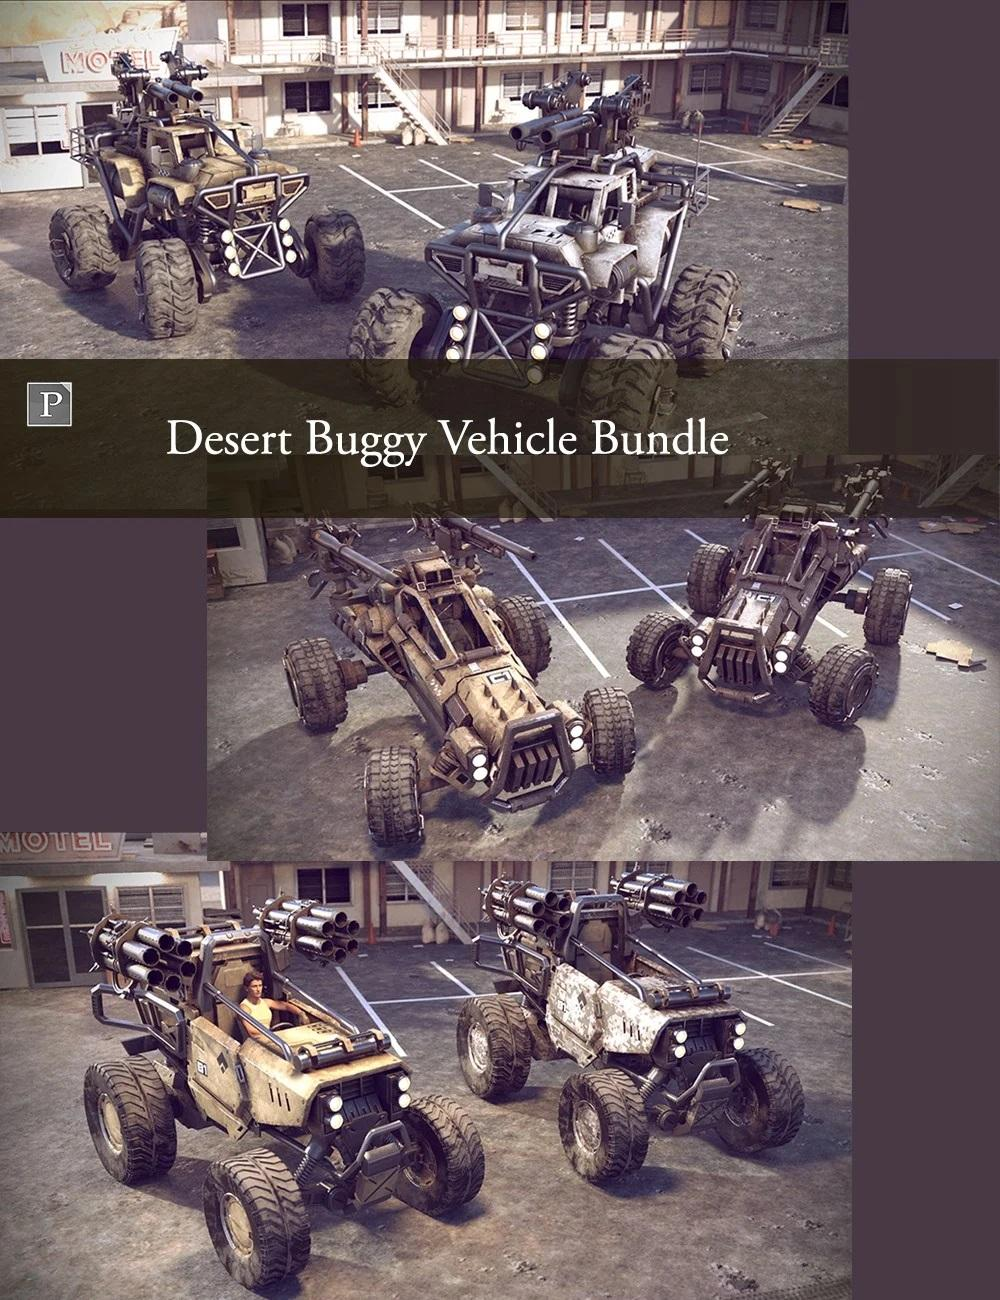 Desert Buggy Vehicle Bundle